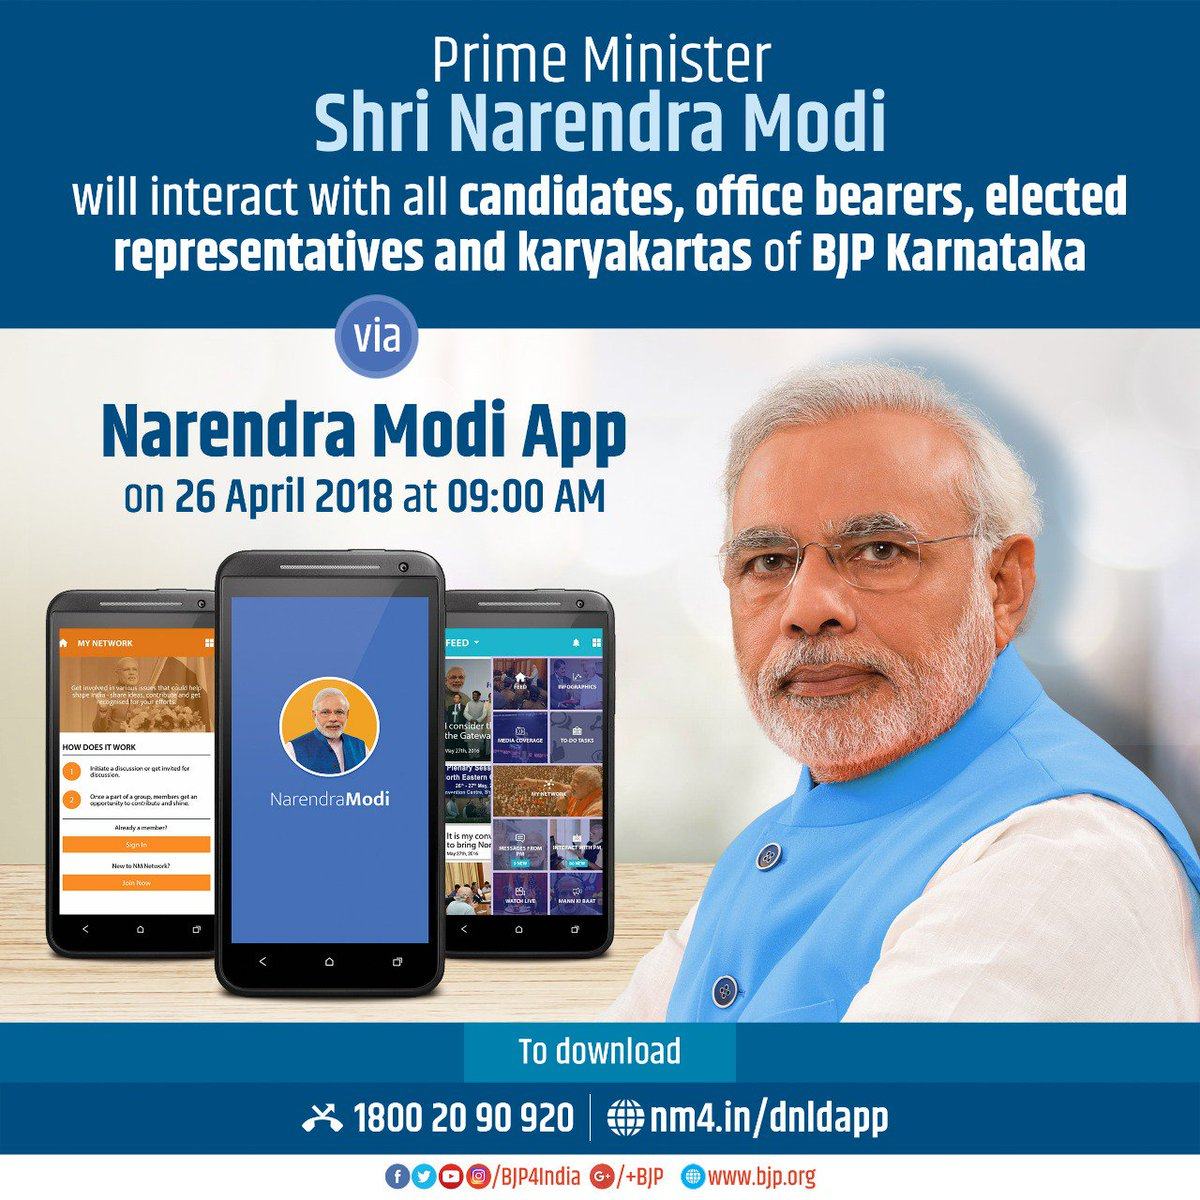 PM Shri @narendramodi will interact with all candidates, office bearers, elected representatives and karyakartas of @BJP4Karnataka through 'Narendra Modi App' at 9 am on 26 April 2018.